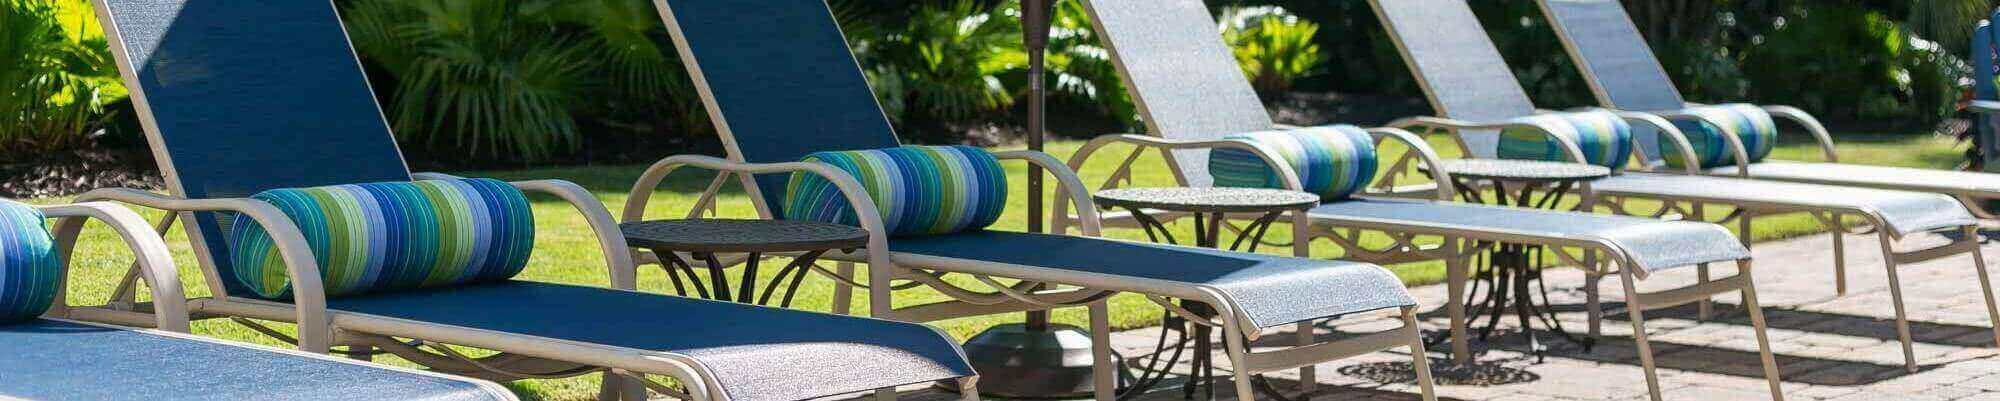 replacement chair slings graco swing vibrating for patio chairs patiosling sling banner 3